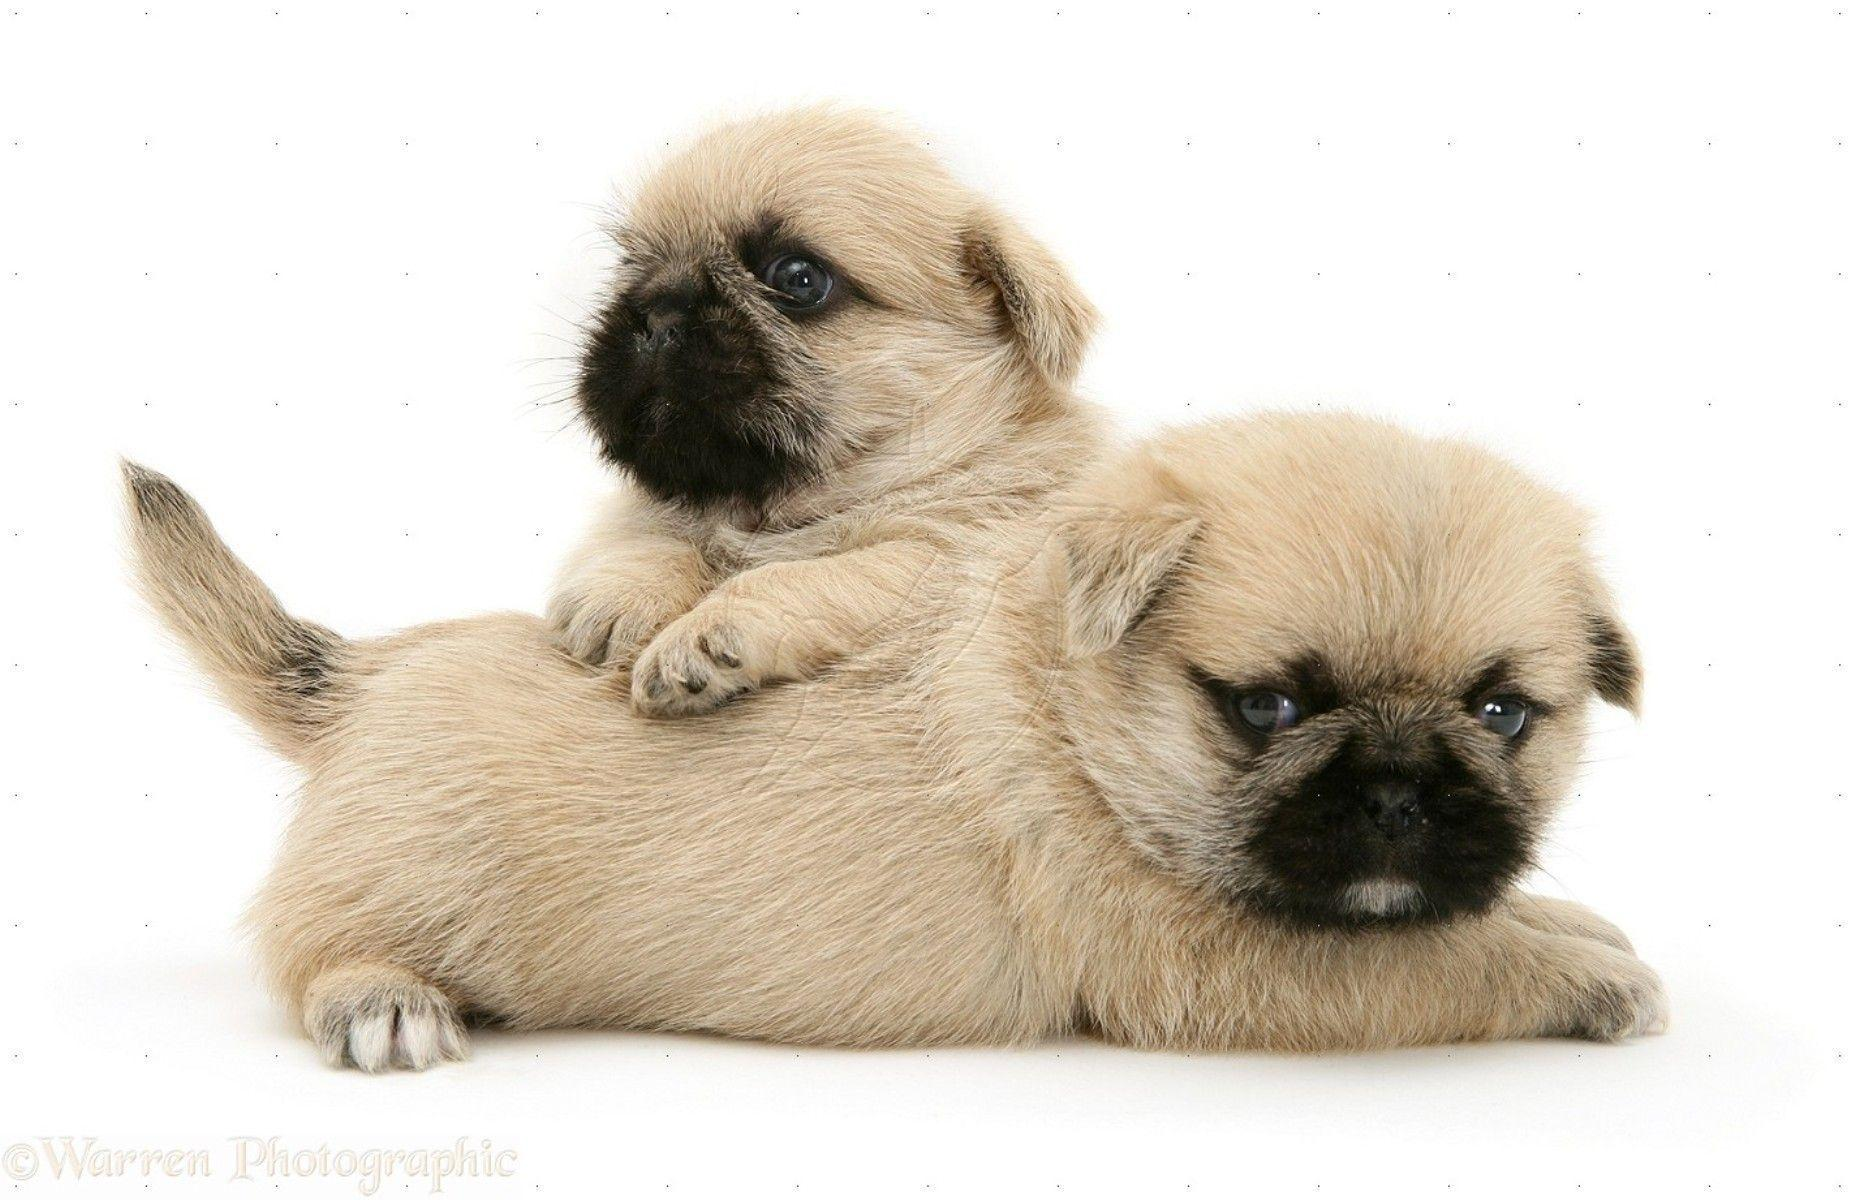 Puppies Live Wallpaper Android Apps on Google Play